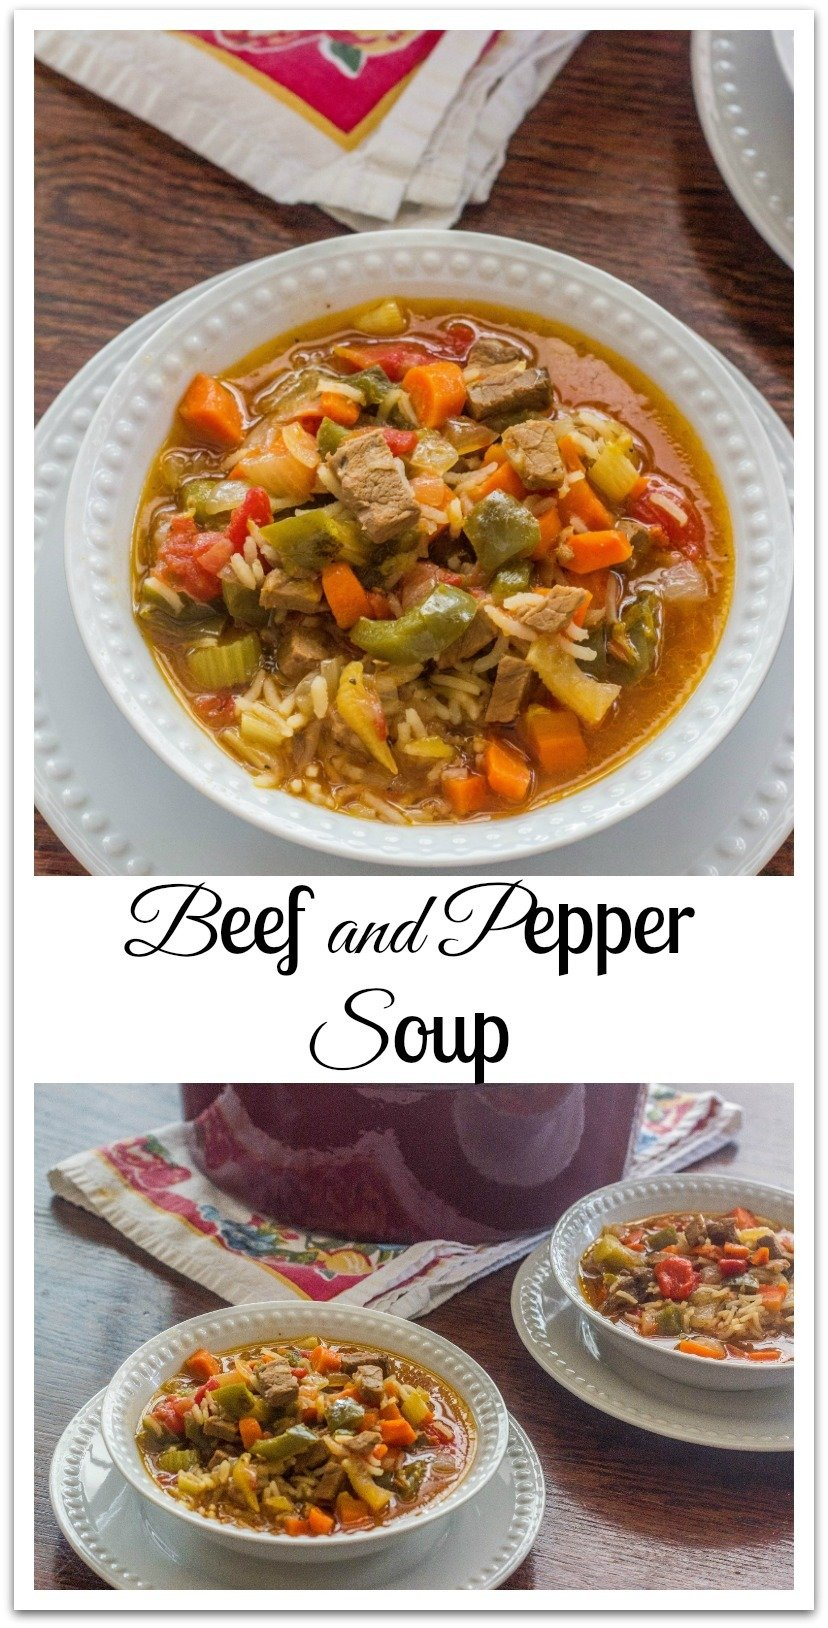 Beef and Pepper Soup was born of a failed beef roast that I couldn't make as tender and juicy as I'd like. #BeefAndPepper #Soup